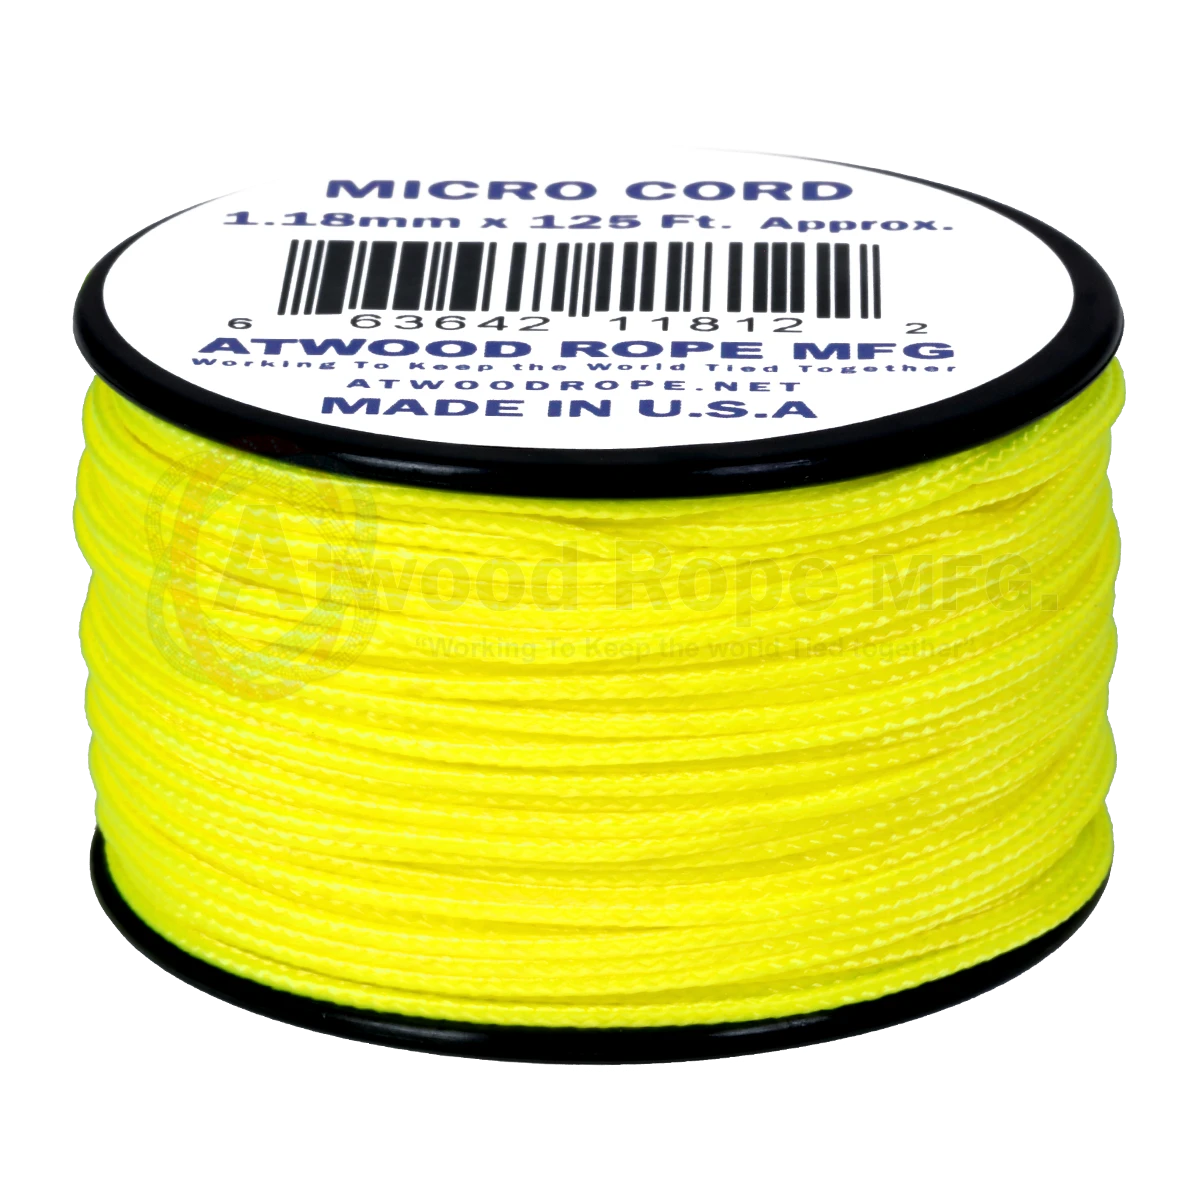 Dây Micro Cord 1.18mm – 100ft – Neon Yellow